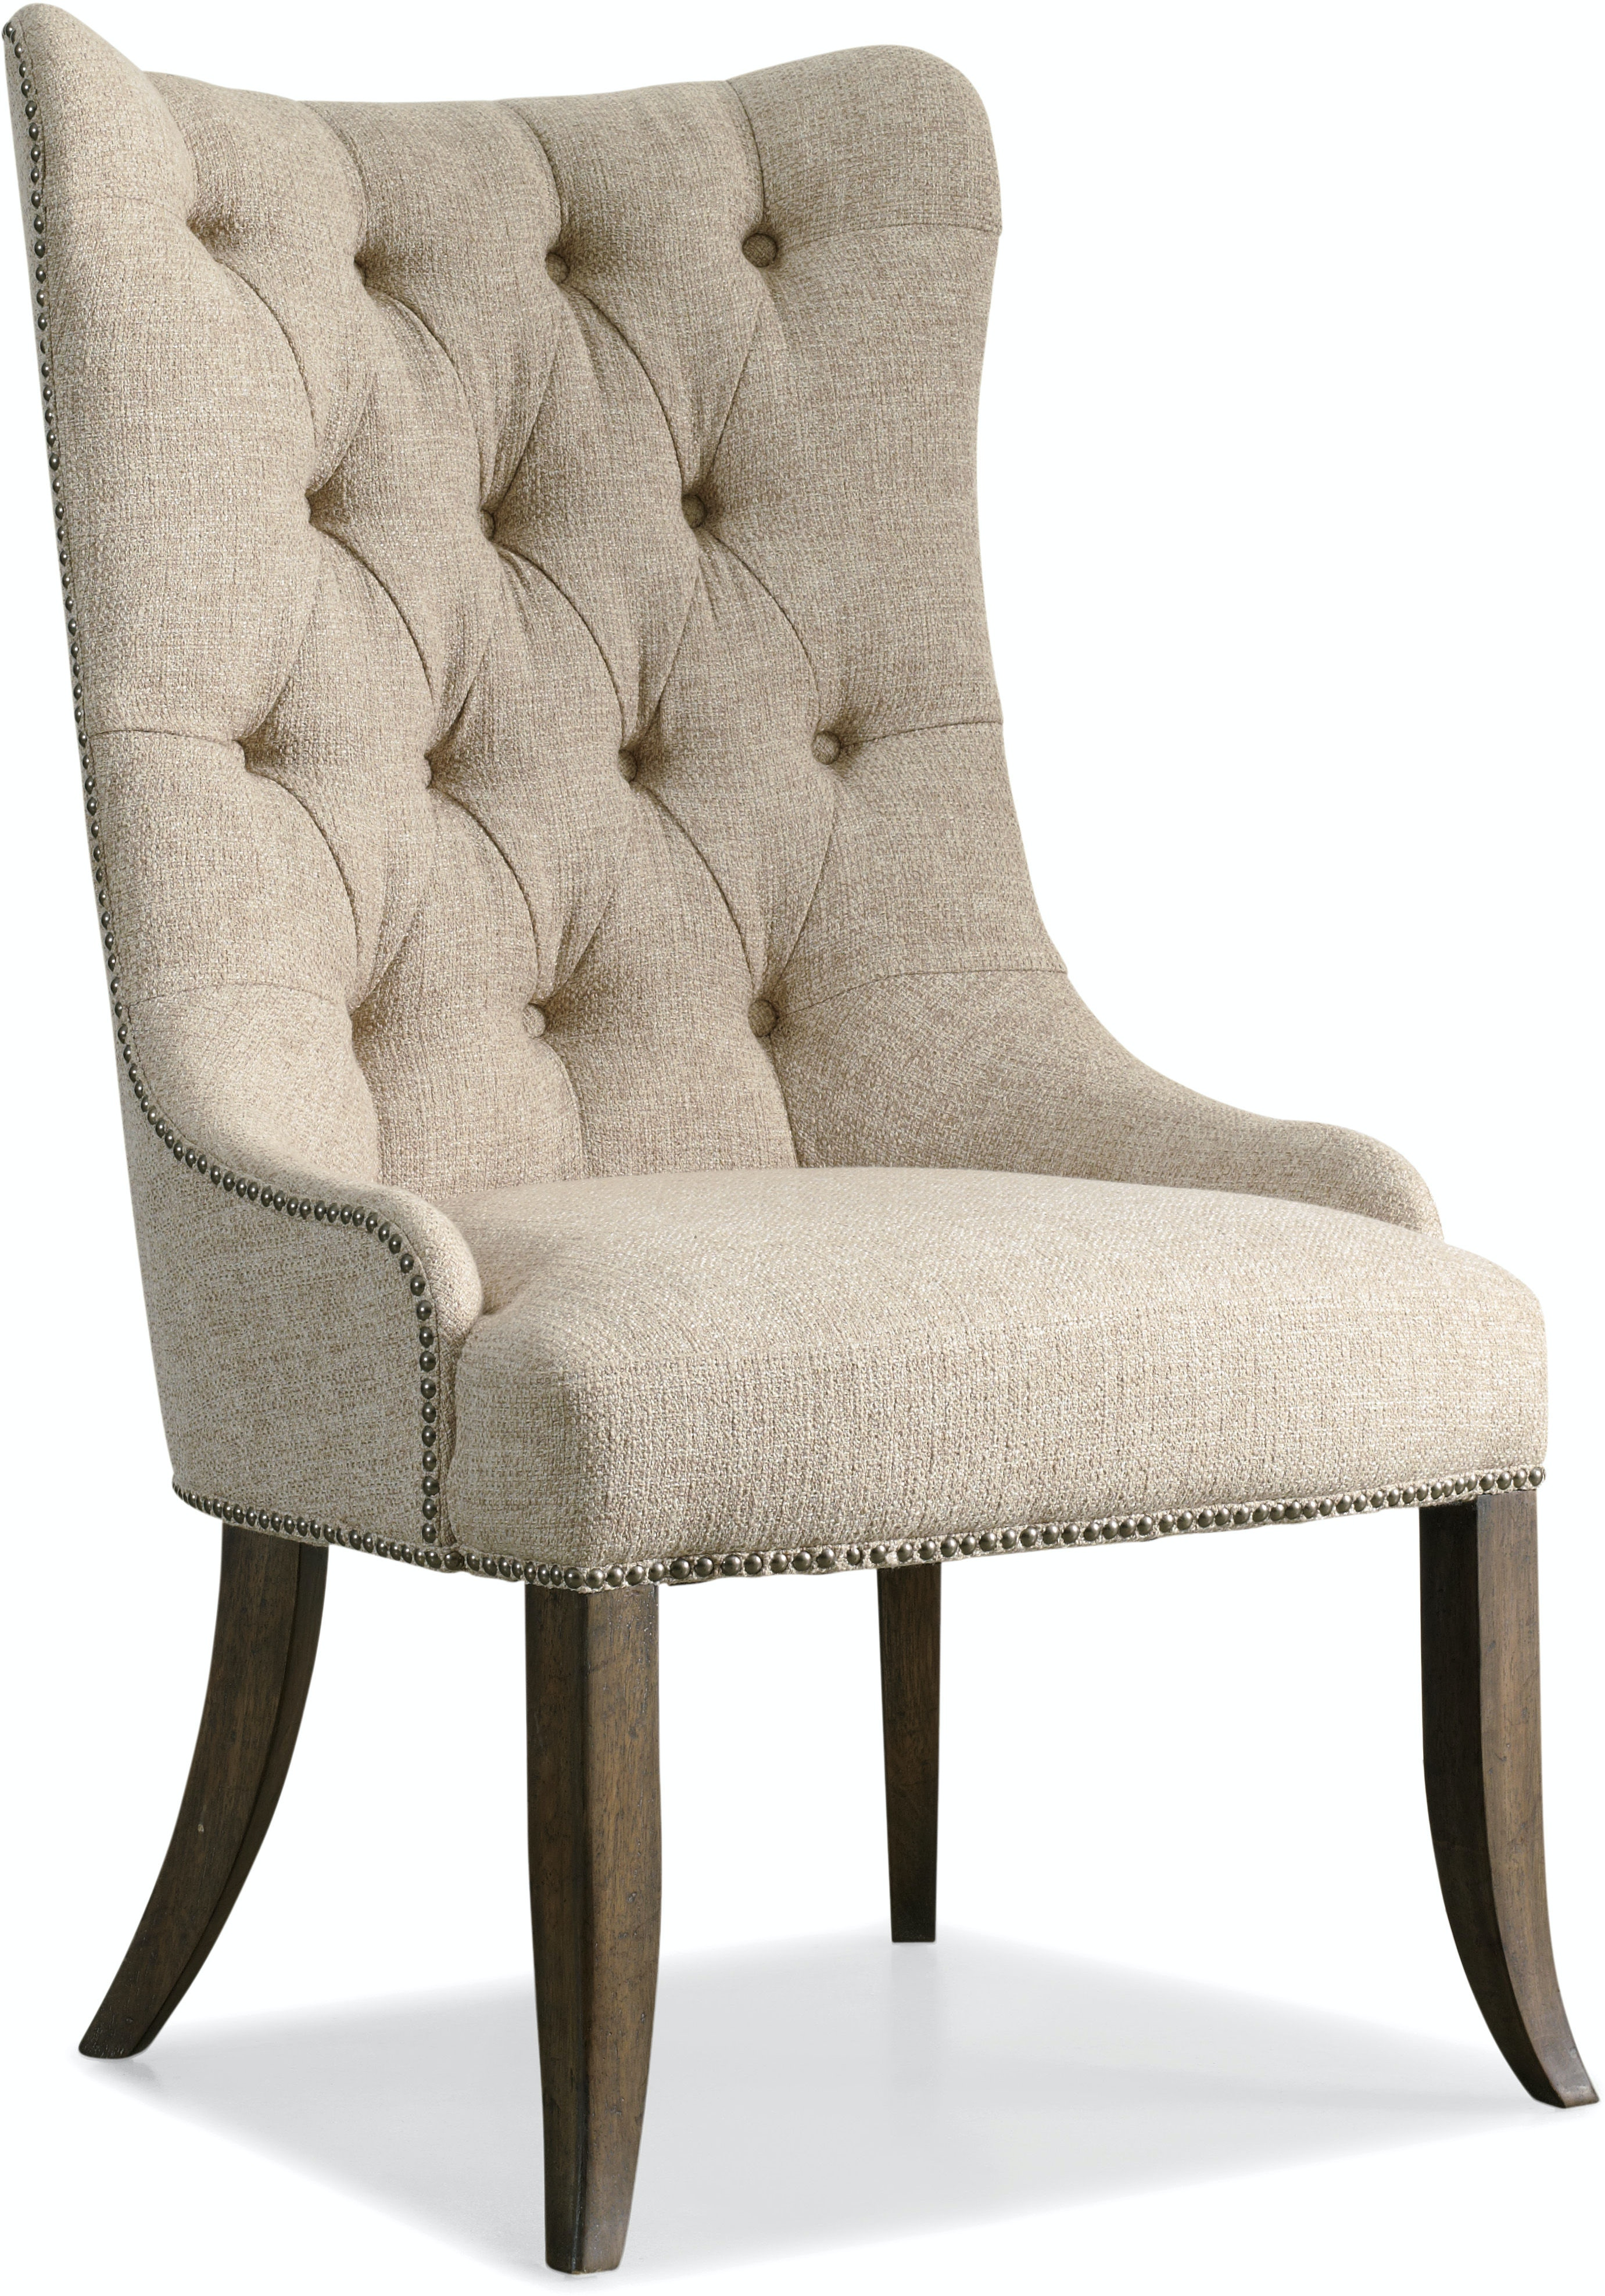 Outstanding Hooker Furniture Dining Room Rhapsody Tufted Dining Chair Bralicious Painted Fabric Chair Ideas Braliciousco